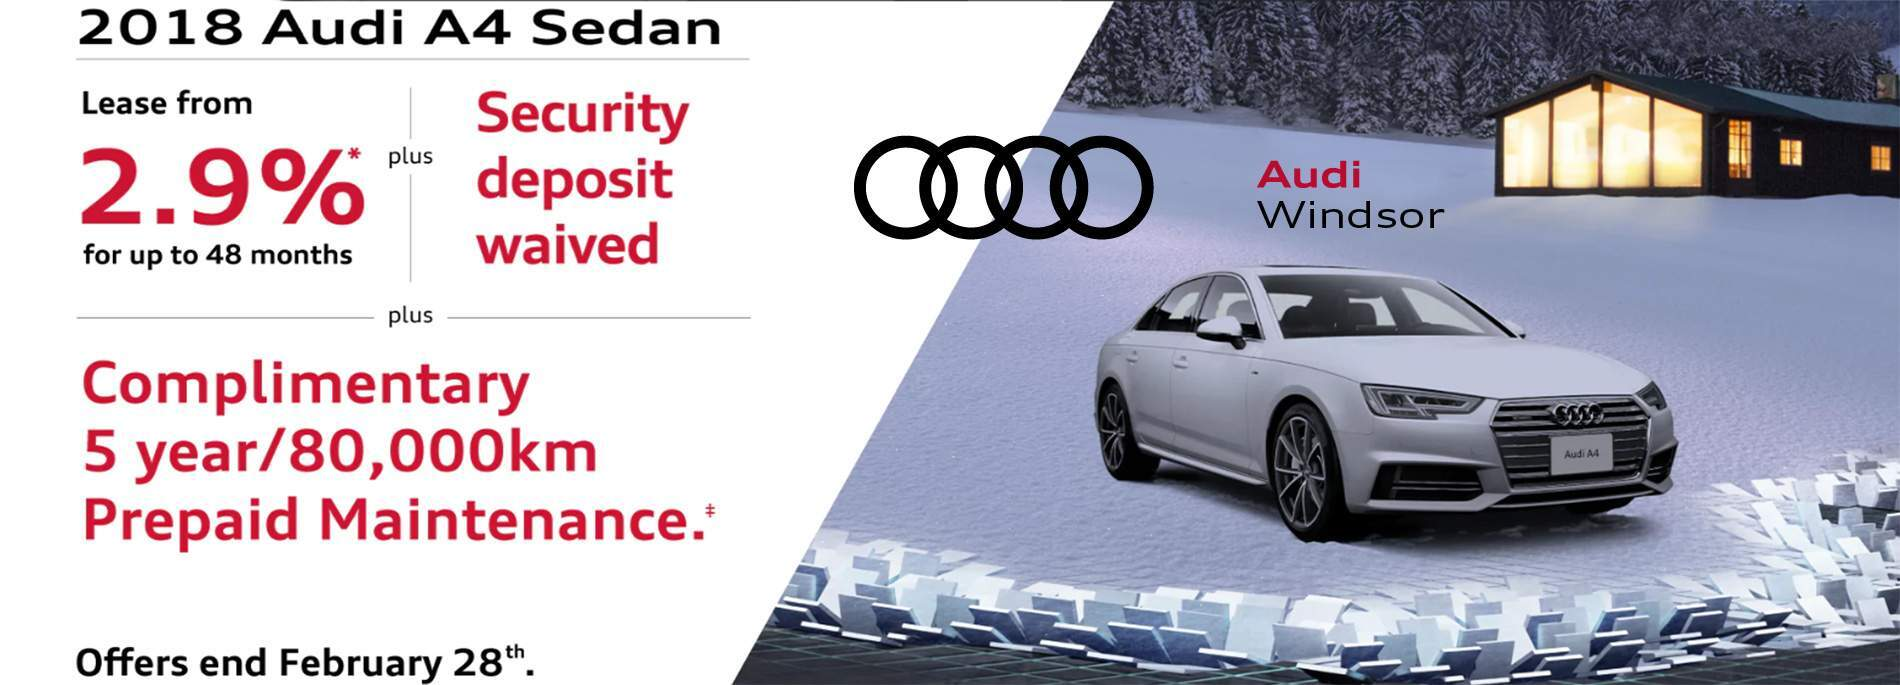 Audi Windsor February 2018 Sales Event 2